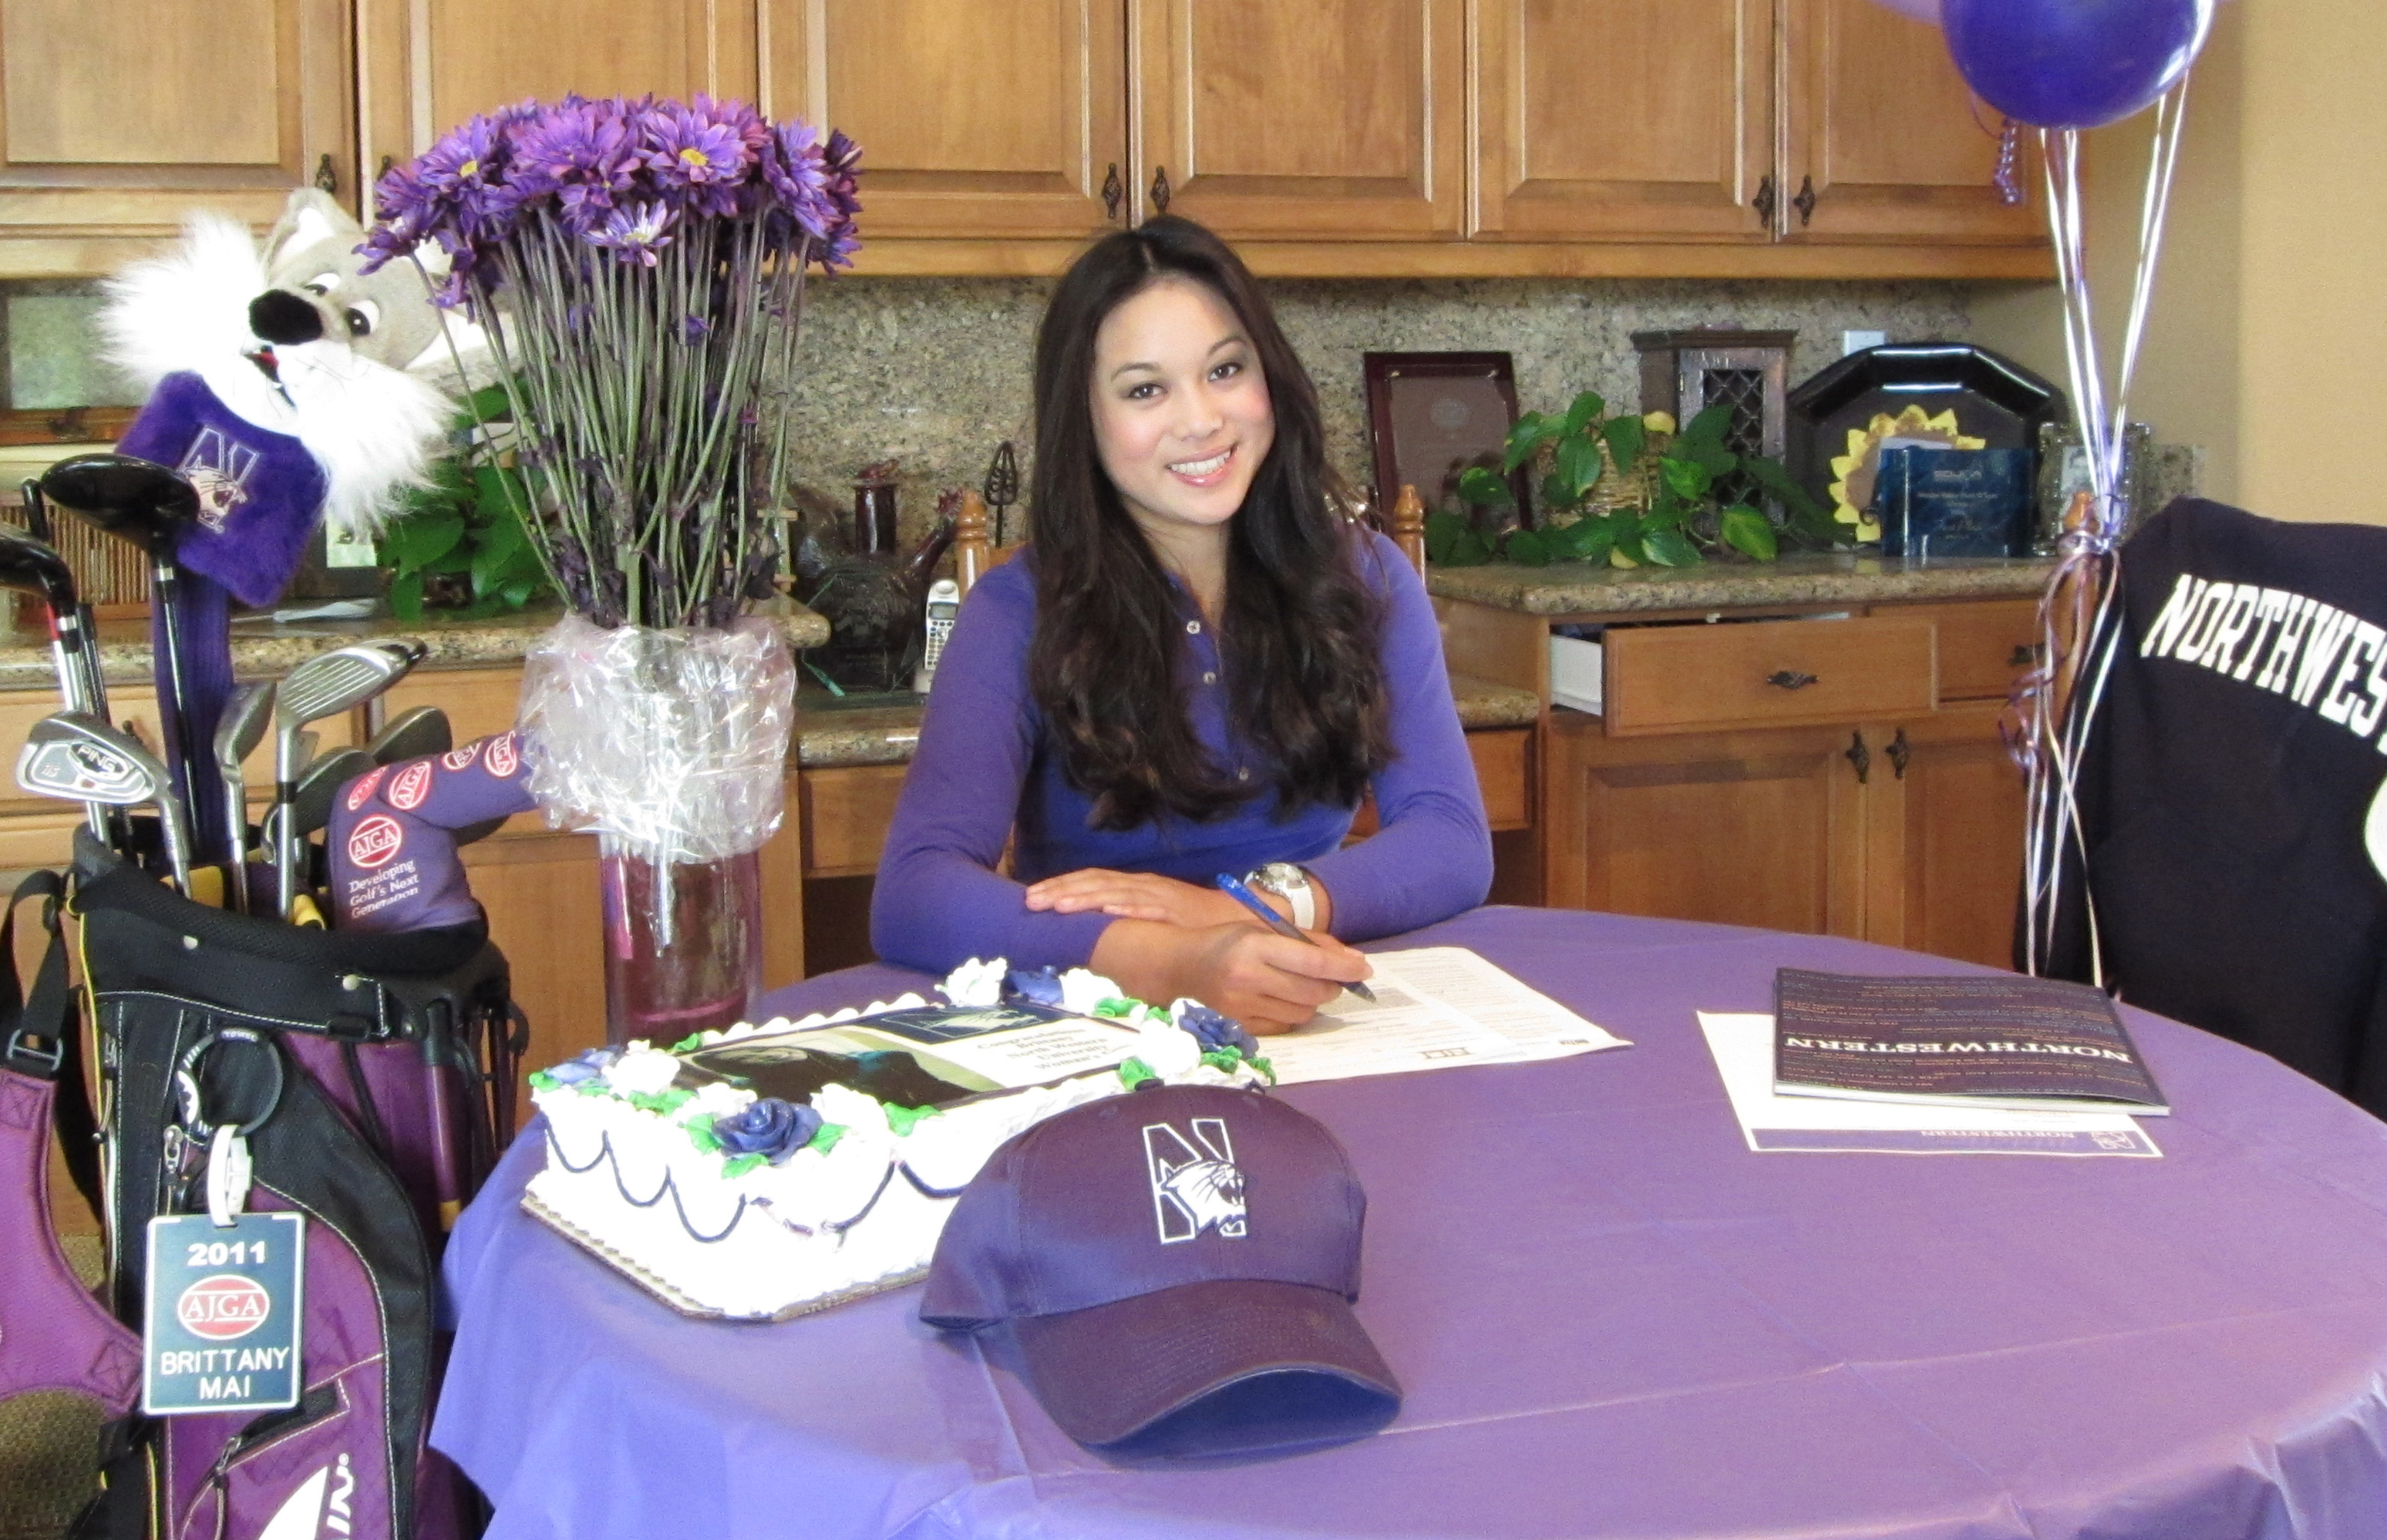 Brittany Mai signed with Northwestern.